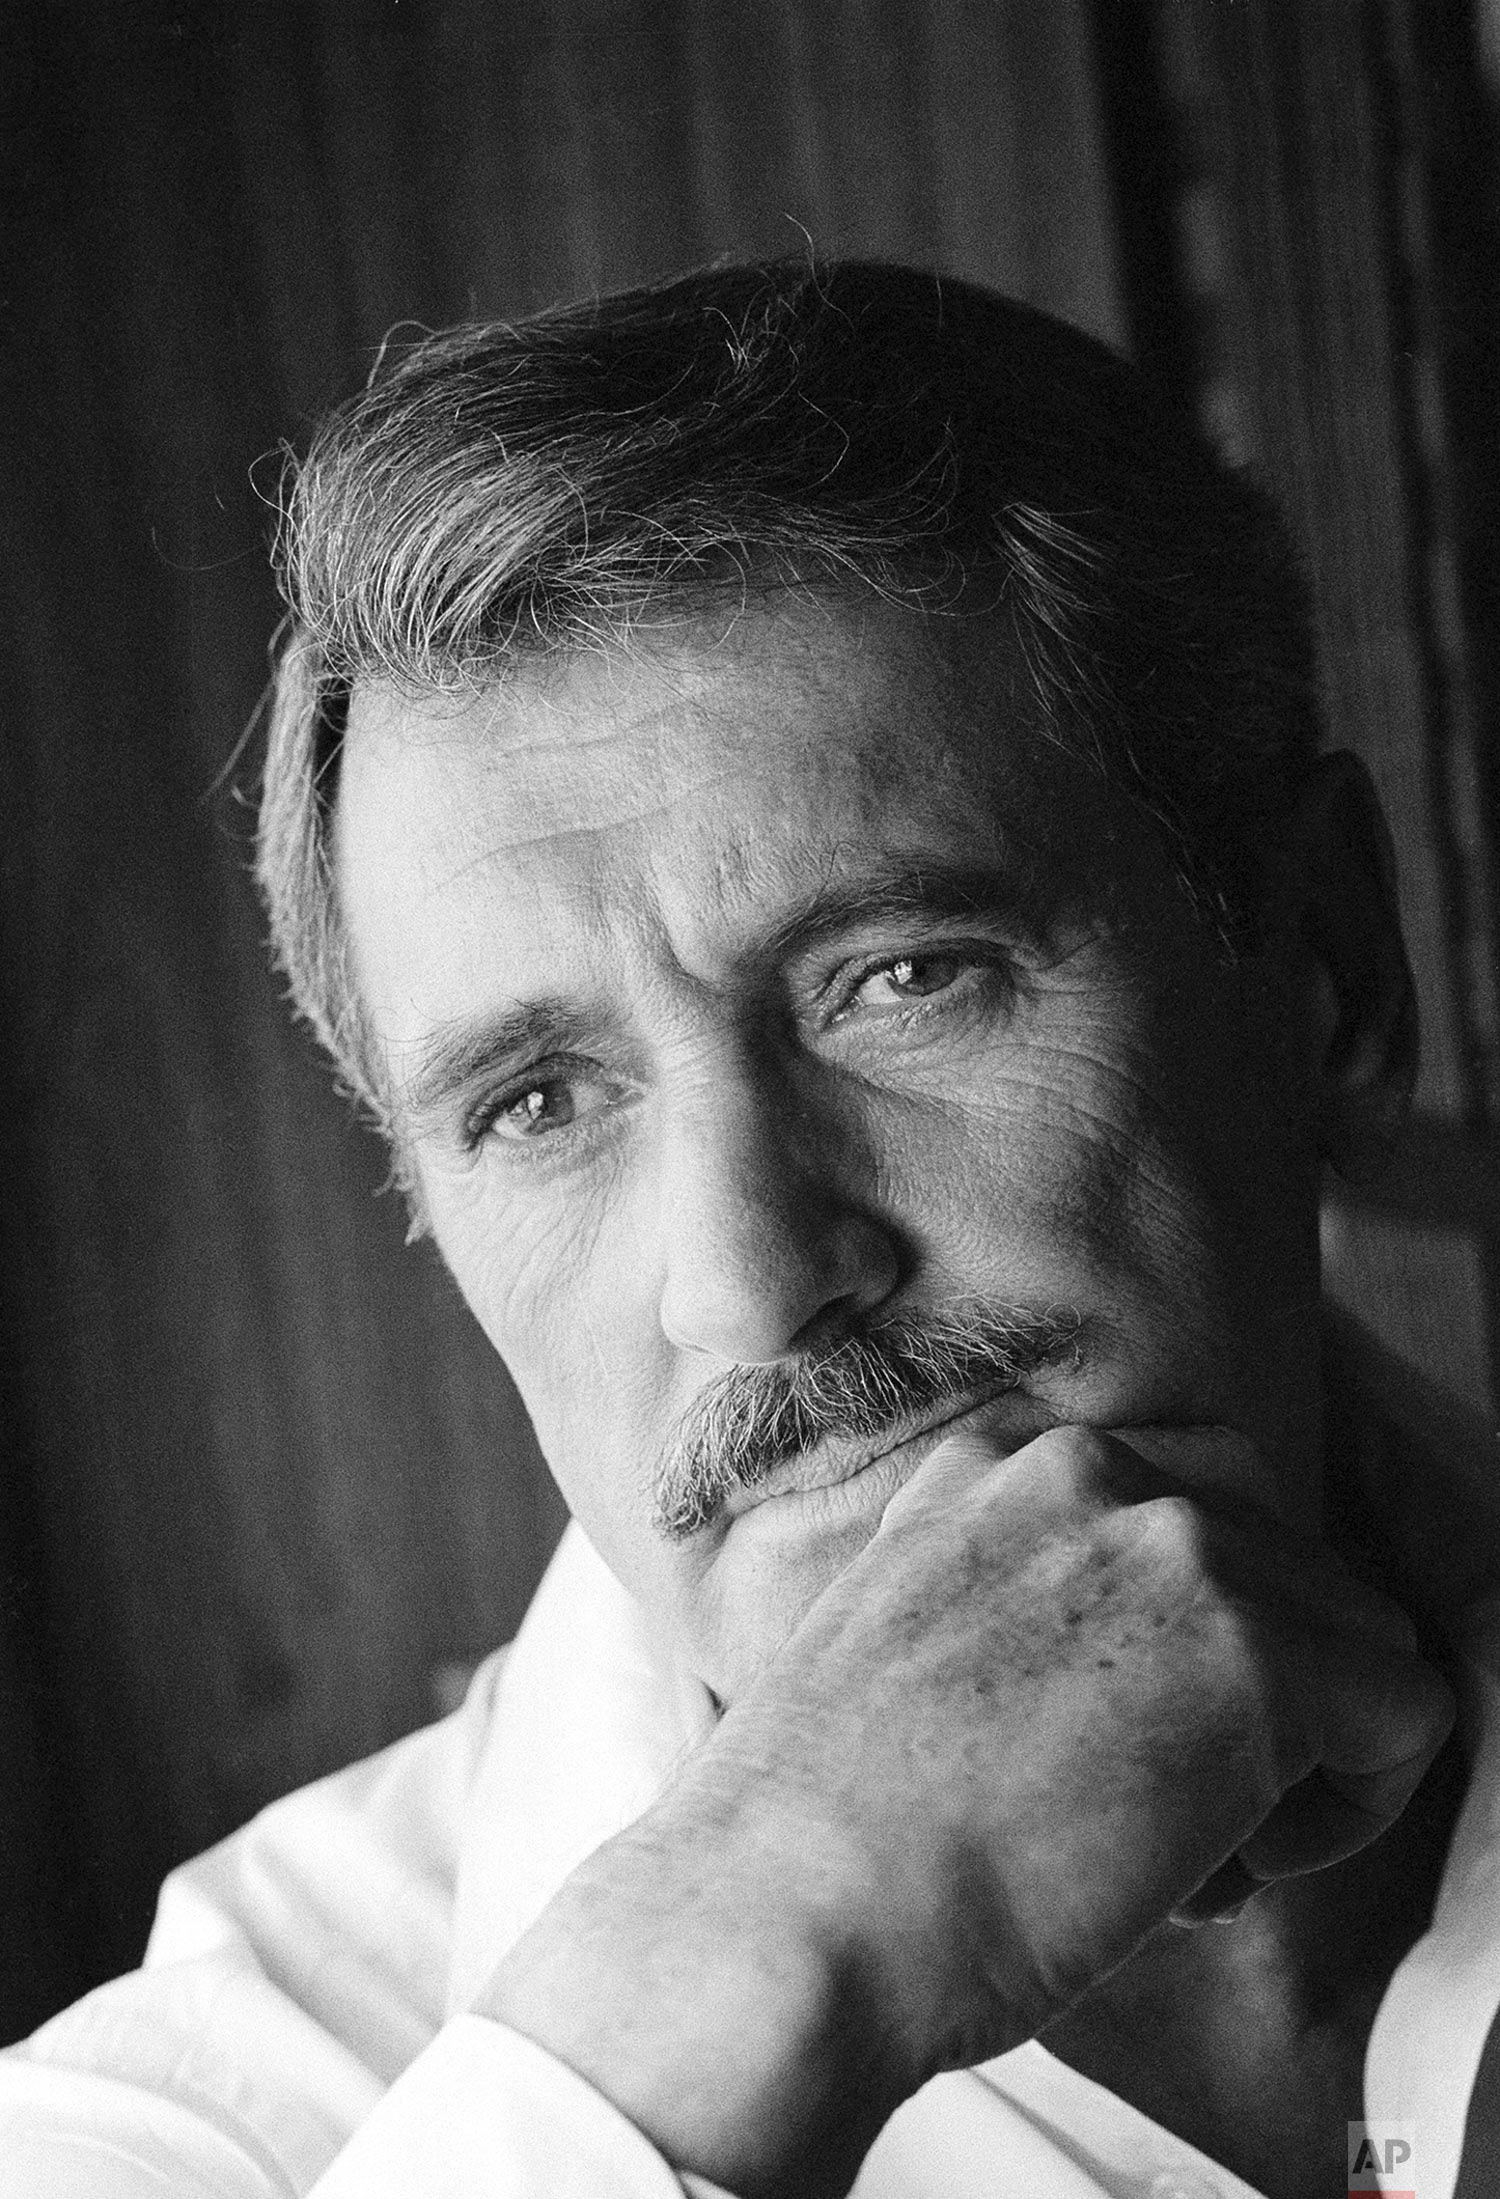 In this August 1982 file photo, actor Rock Hudson poses for a portrait in Los Angeles, Calif. The 1980s proved shattering _ but also galvanizing _ for gay Americans, as an initially mysterious, unnamed disease morphed into the AIDS epidemic. Many thousands of gay men died, including Hudson; his death played a major role in raising public awareness of the disease. (AP Photo/Lennox McLendon)